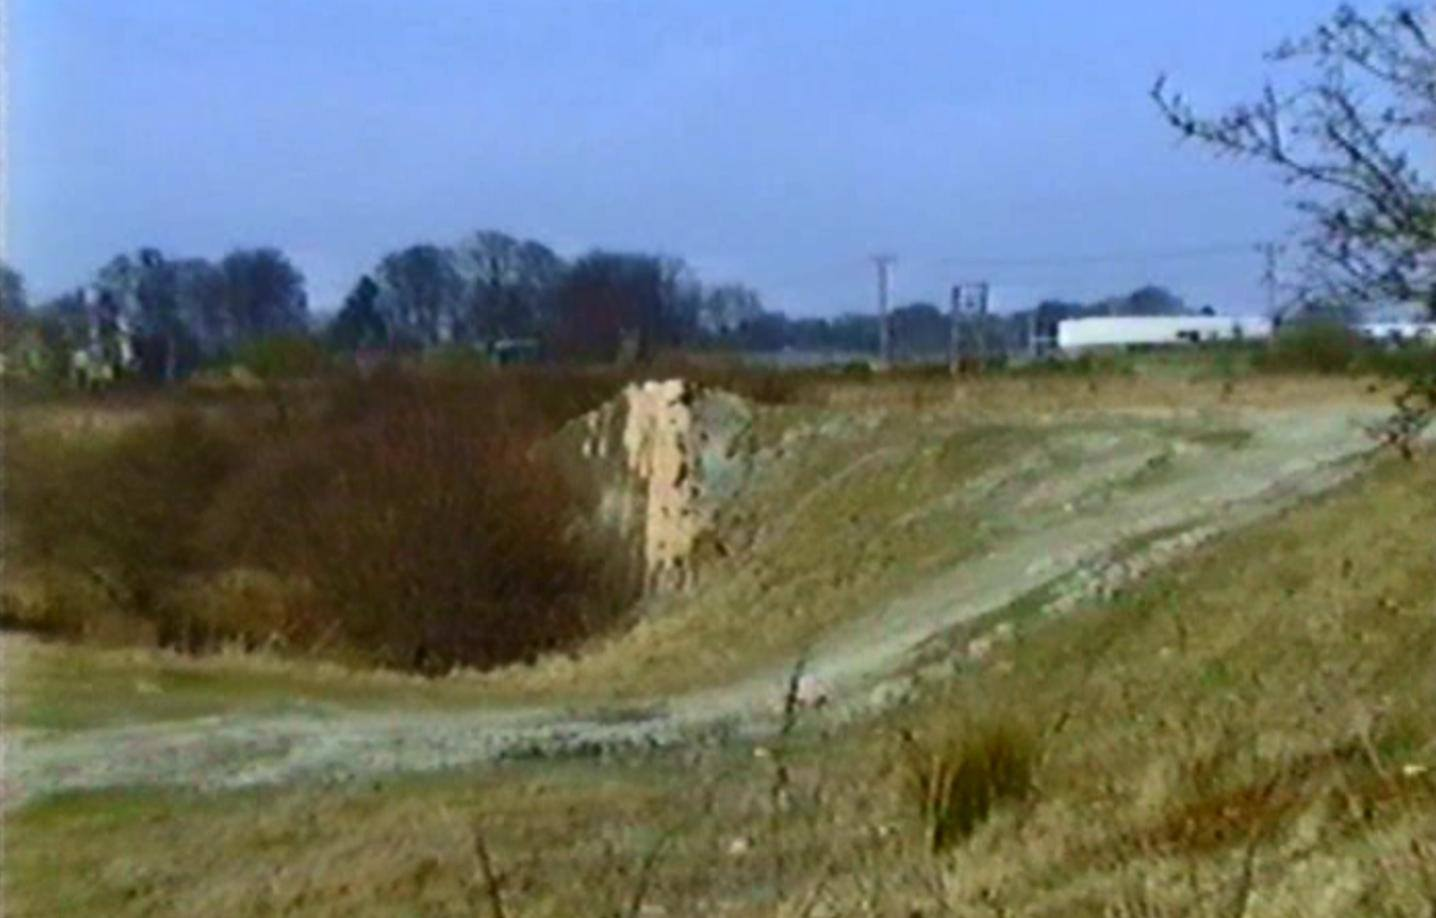 Drift shaft remnants 1993